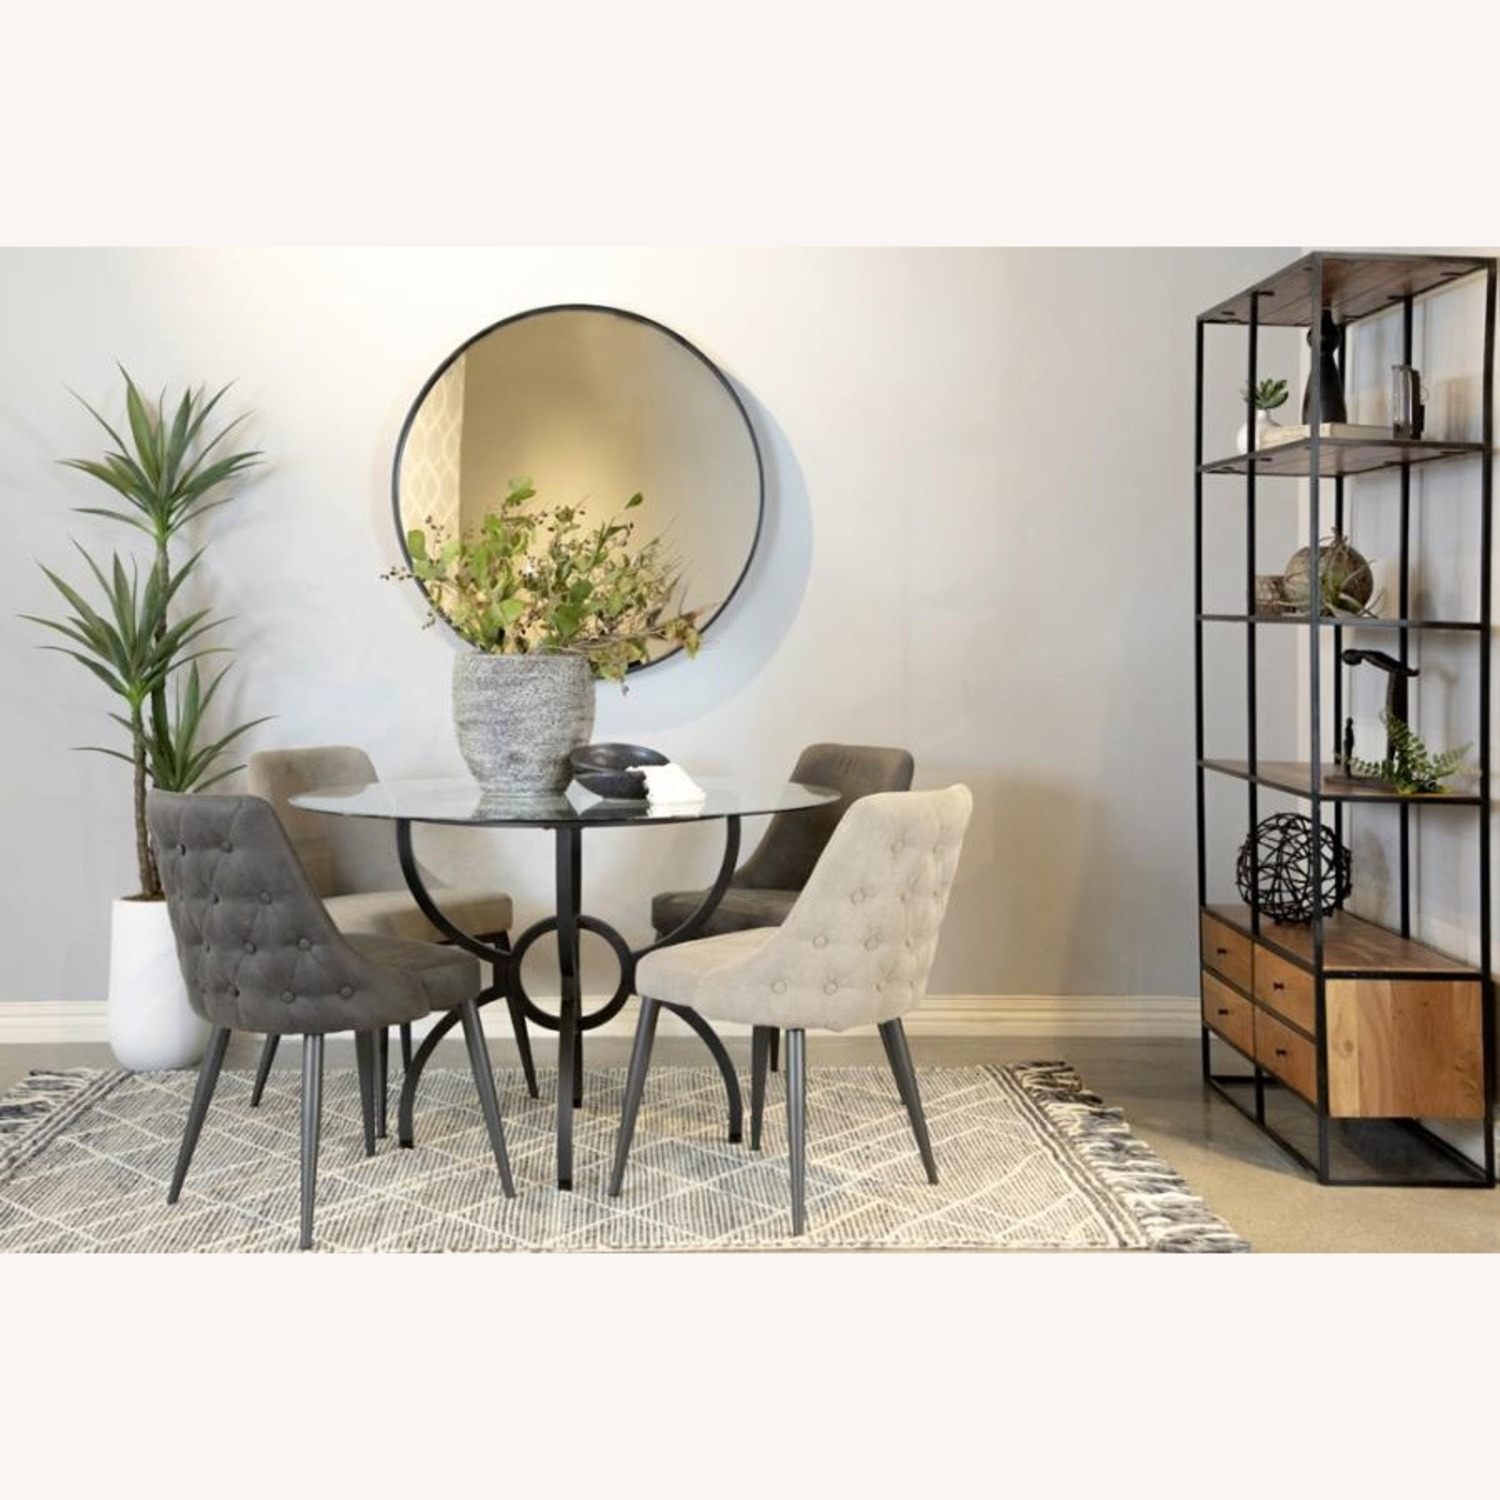 Dining Table In Gunmetal Base W/ Clear Glass Top - image-5